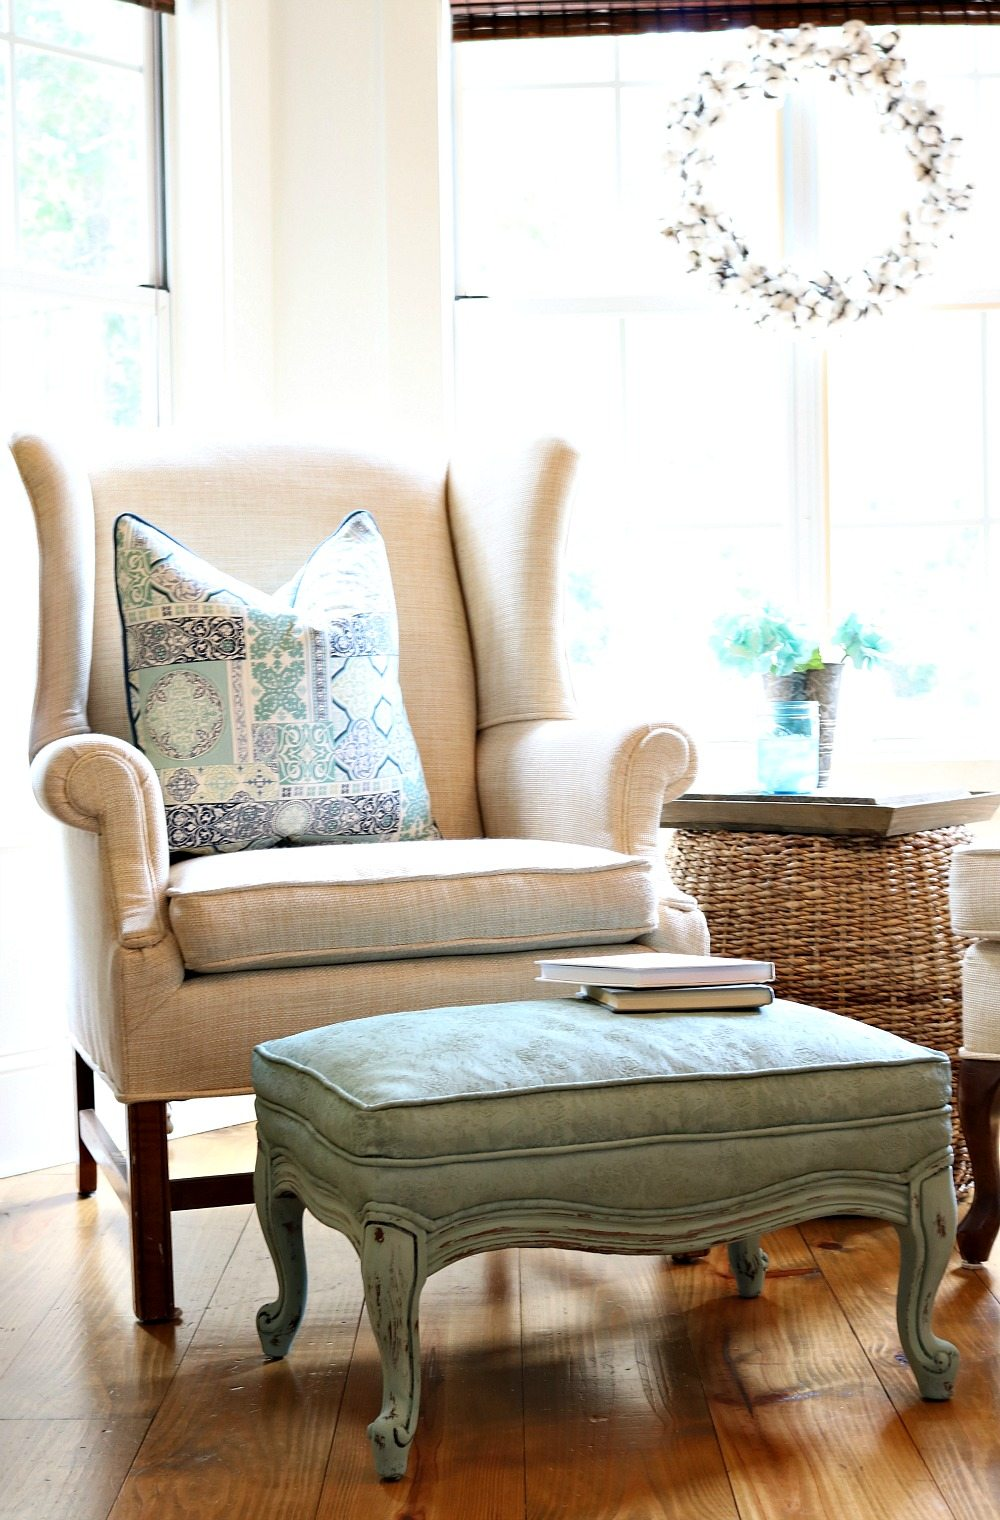 You can paint fabric and make it feel good